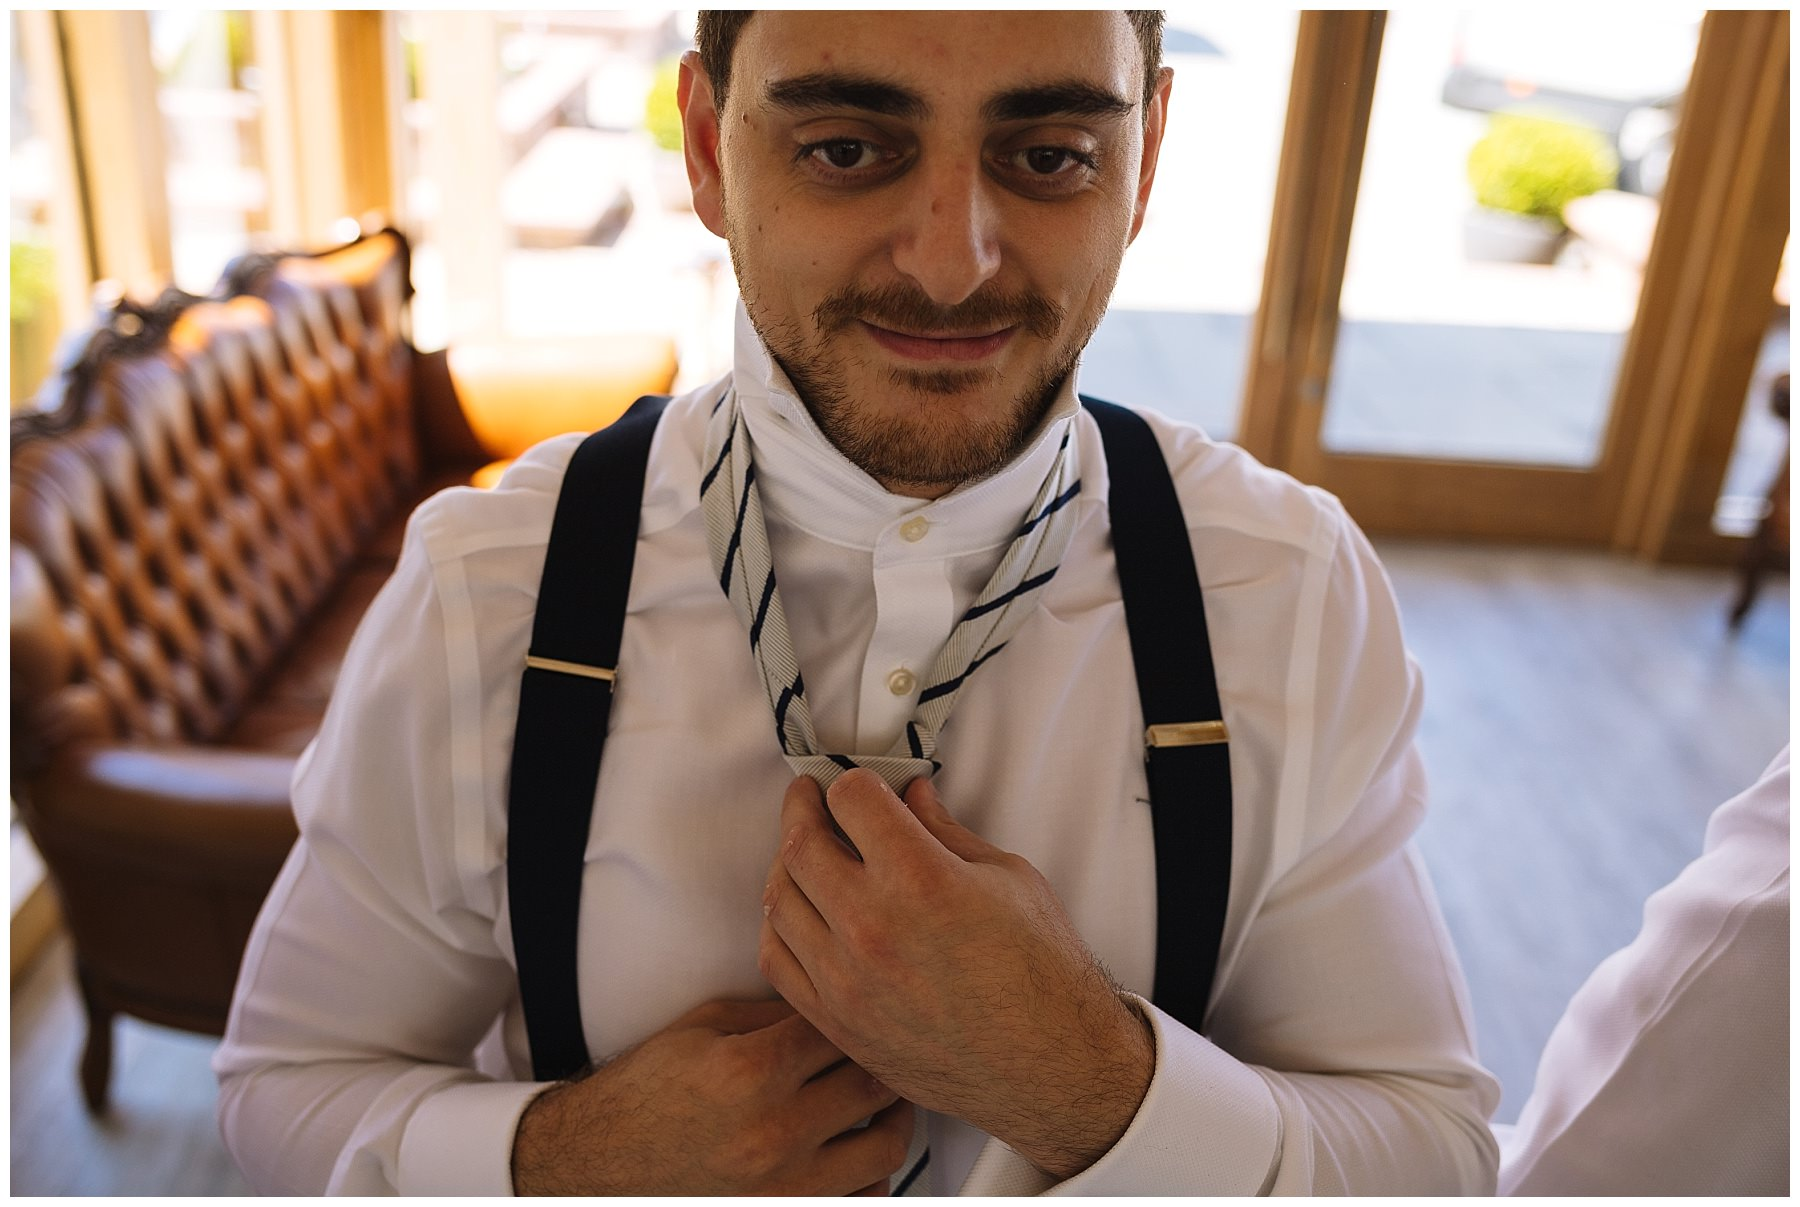 Groom puts on tie ahead of wedding